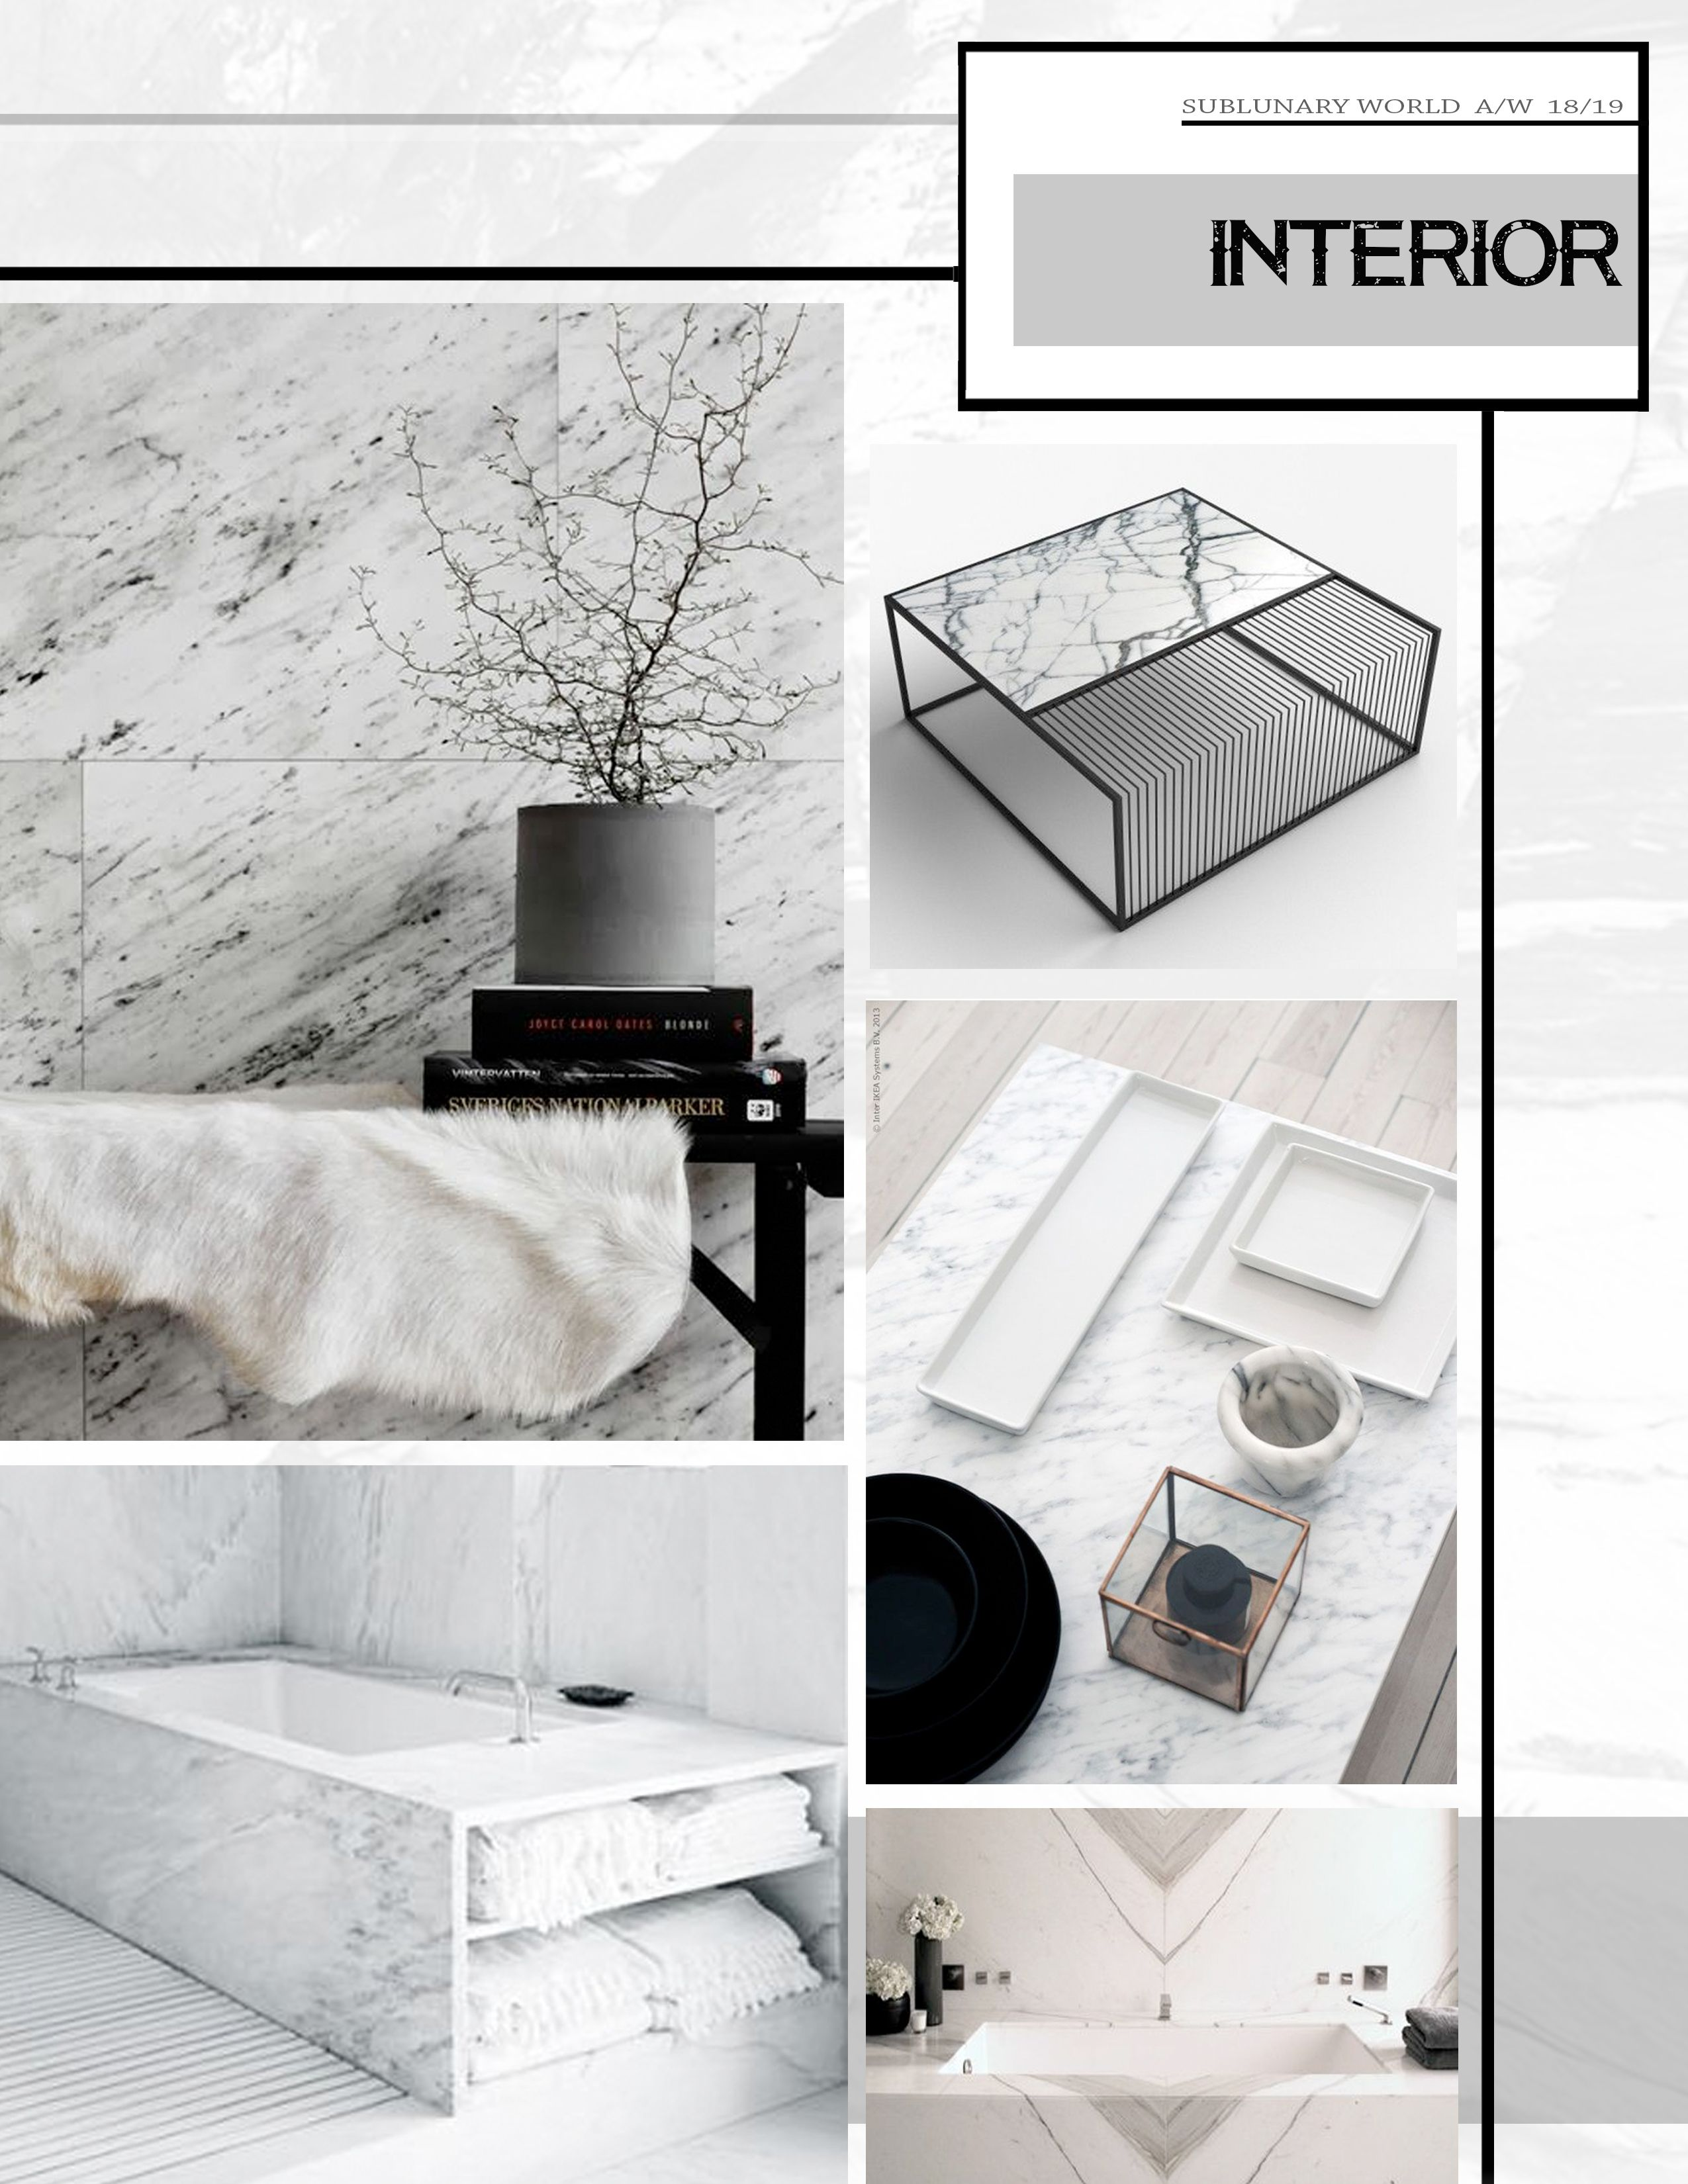 Mode Kleur Interieur 2018 The Trend Book Focuses Of The Trend Forecasting For Autumn